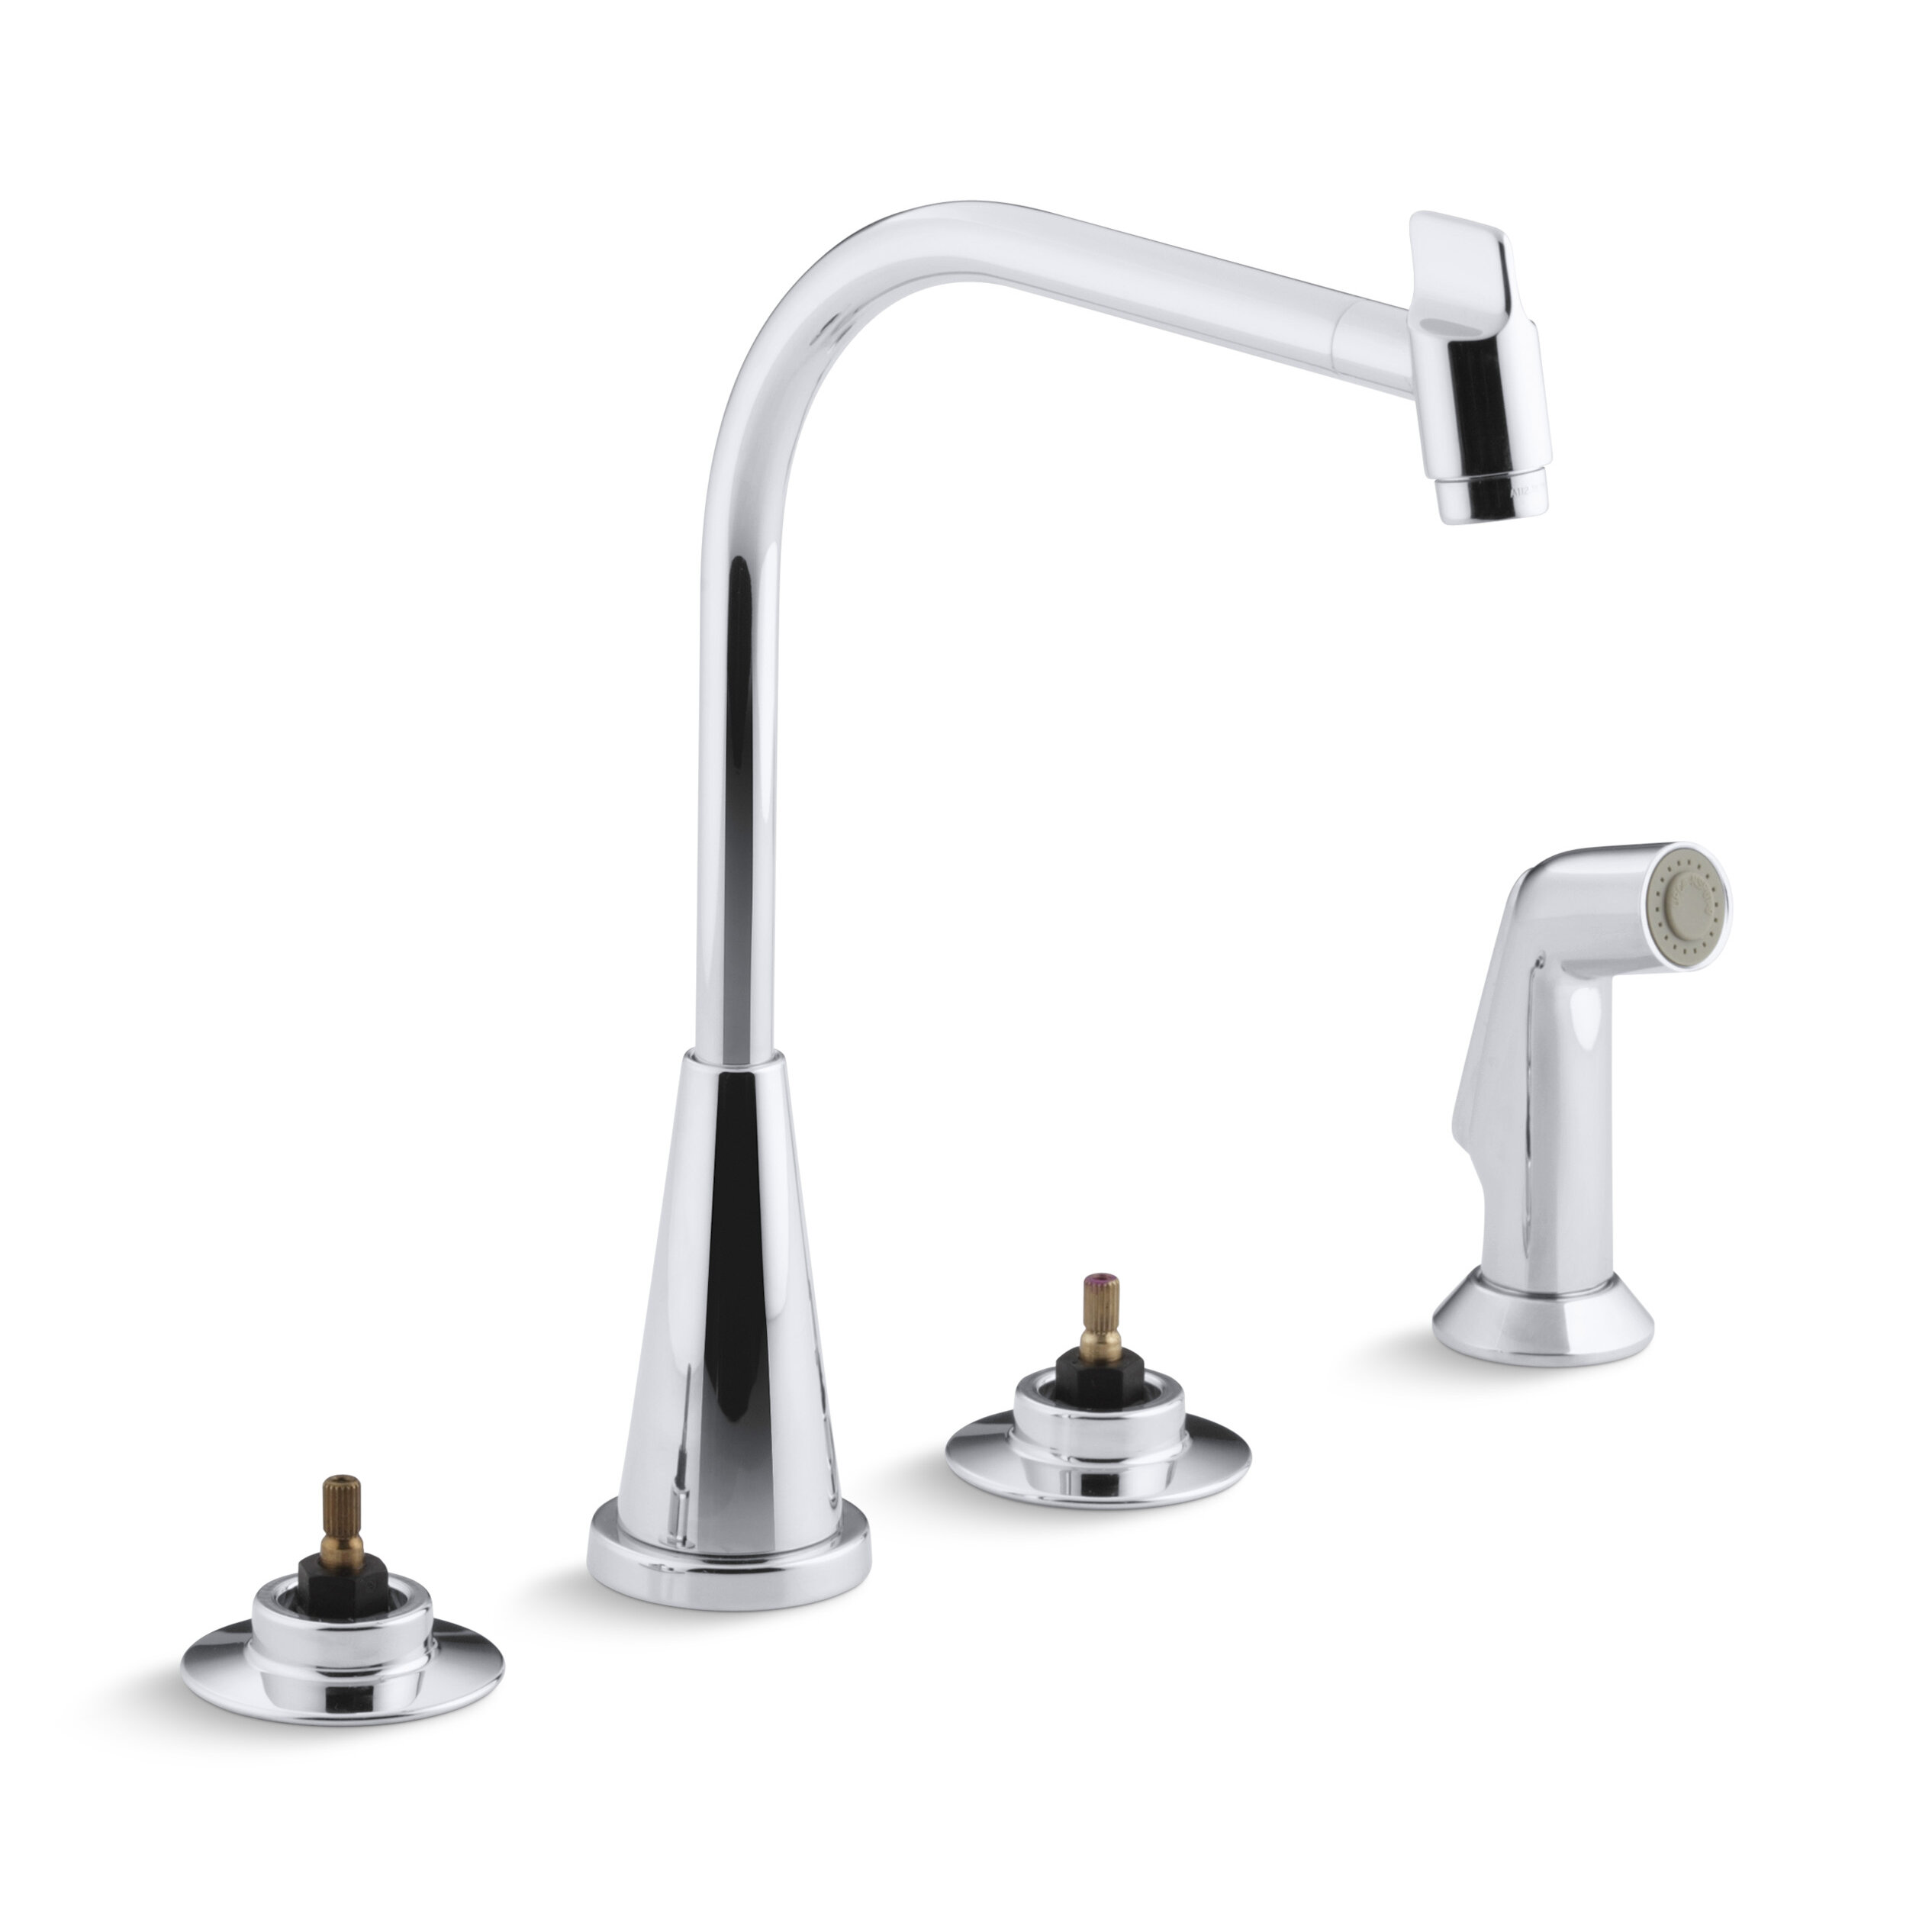 K 7779 k cp triton 4 hole widespread kitchen sink faucet with 8 multi swivel spout and matching finish sidespray requires handles